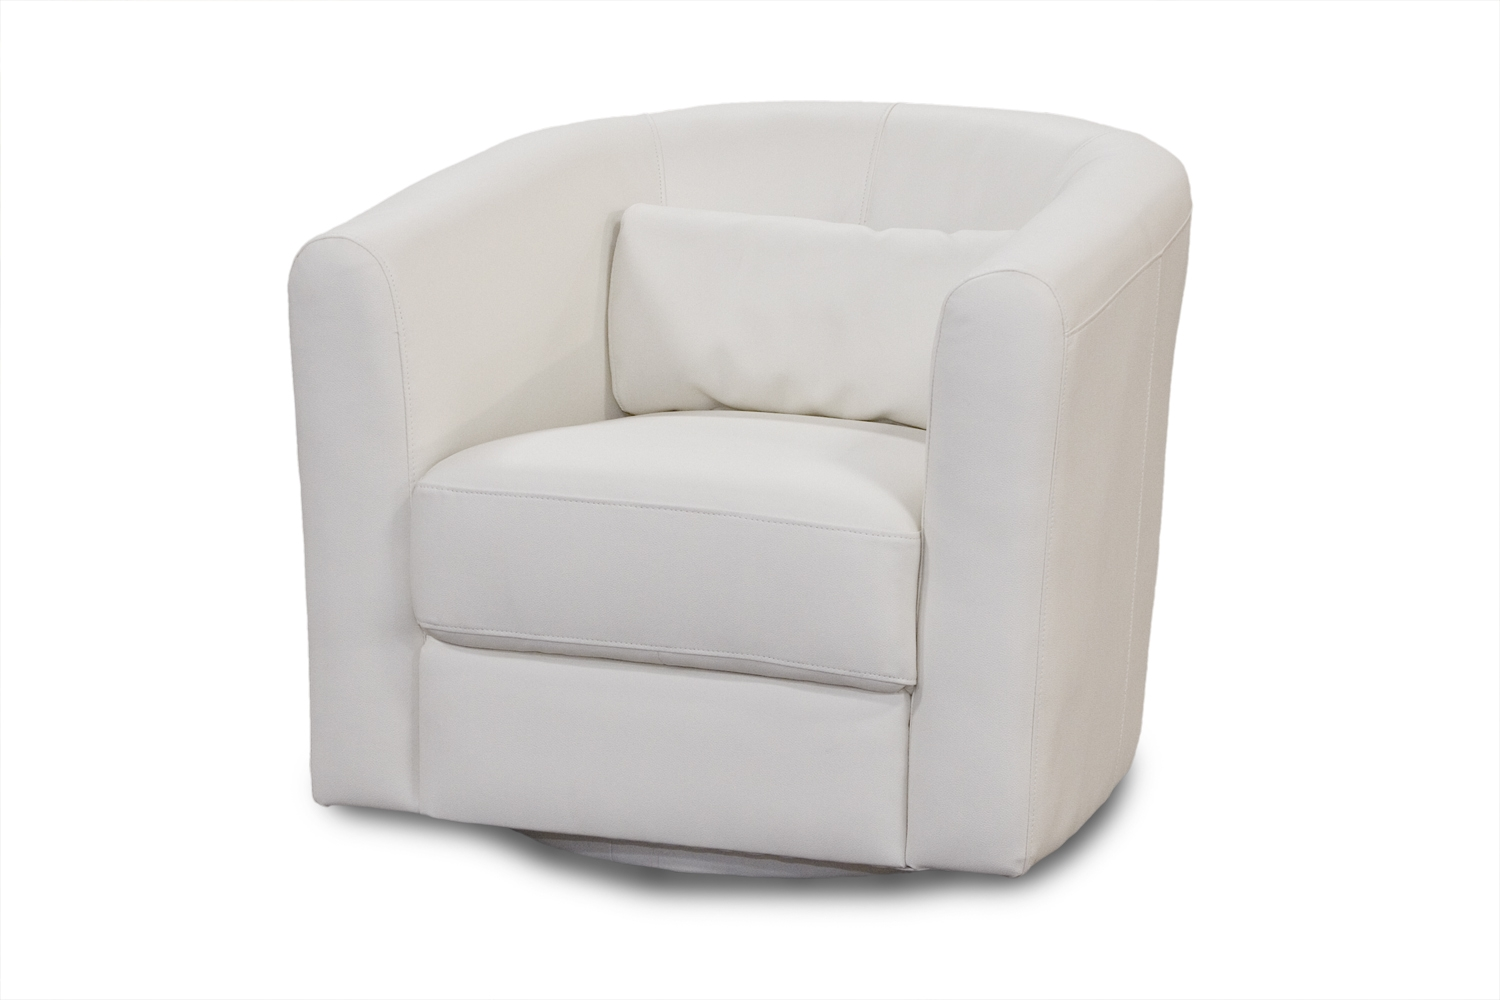 Terrific Angelica Low Profile Swivel Chair Angelicaw Evinco Design Onthecornerstone Fun Painted Chair Ideas Images Onthecornerstoneorg